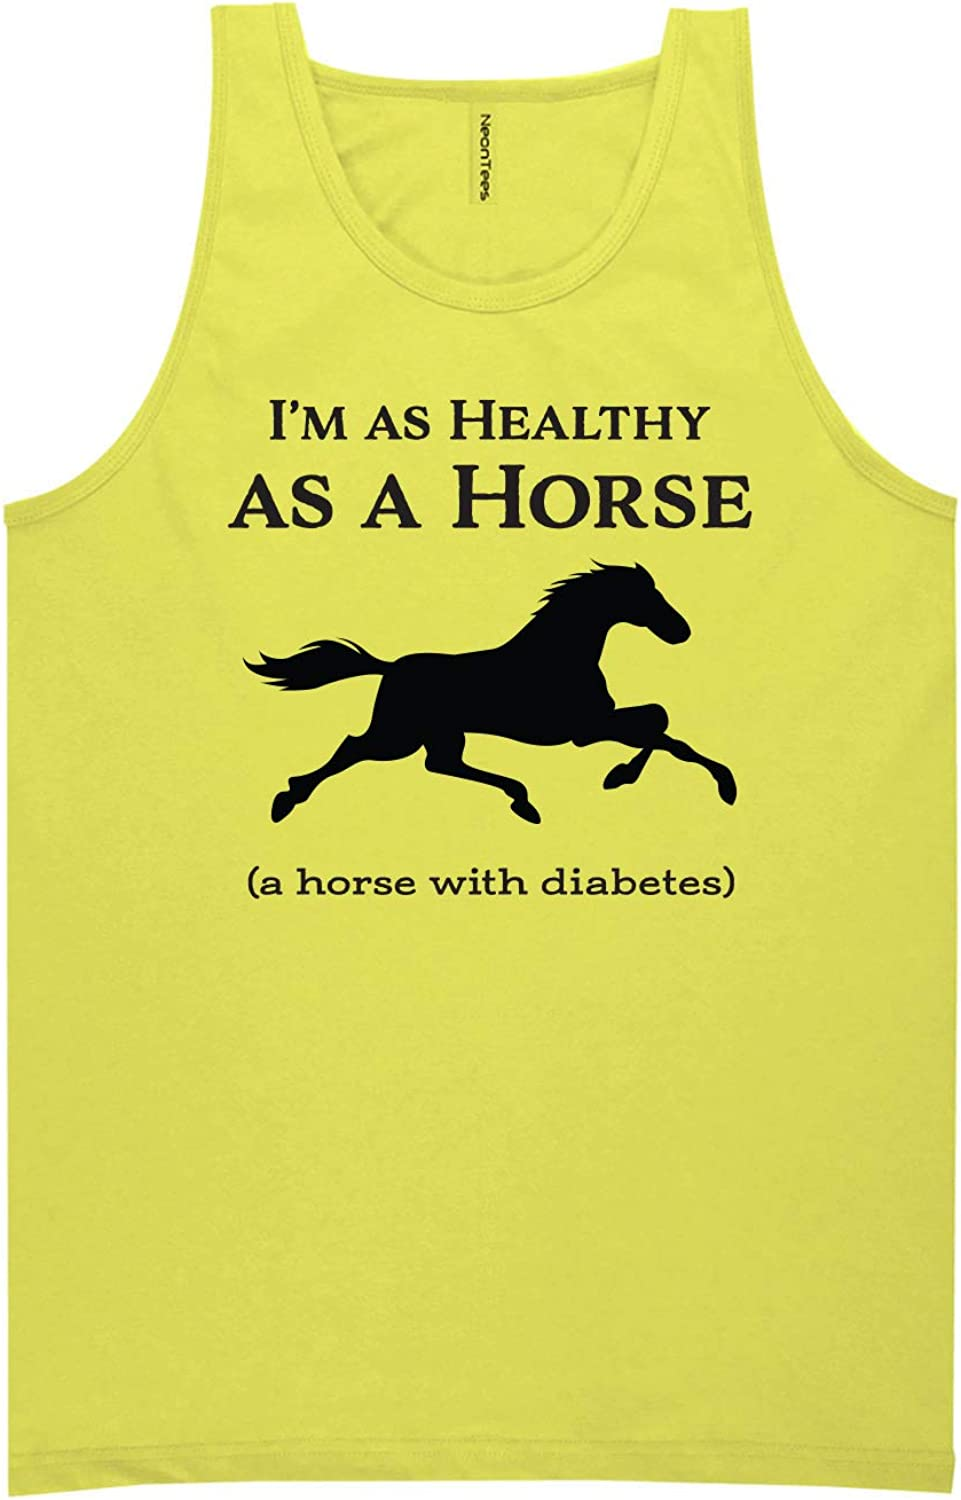 I'm As Healthy As A Horse Neon Tank Top